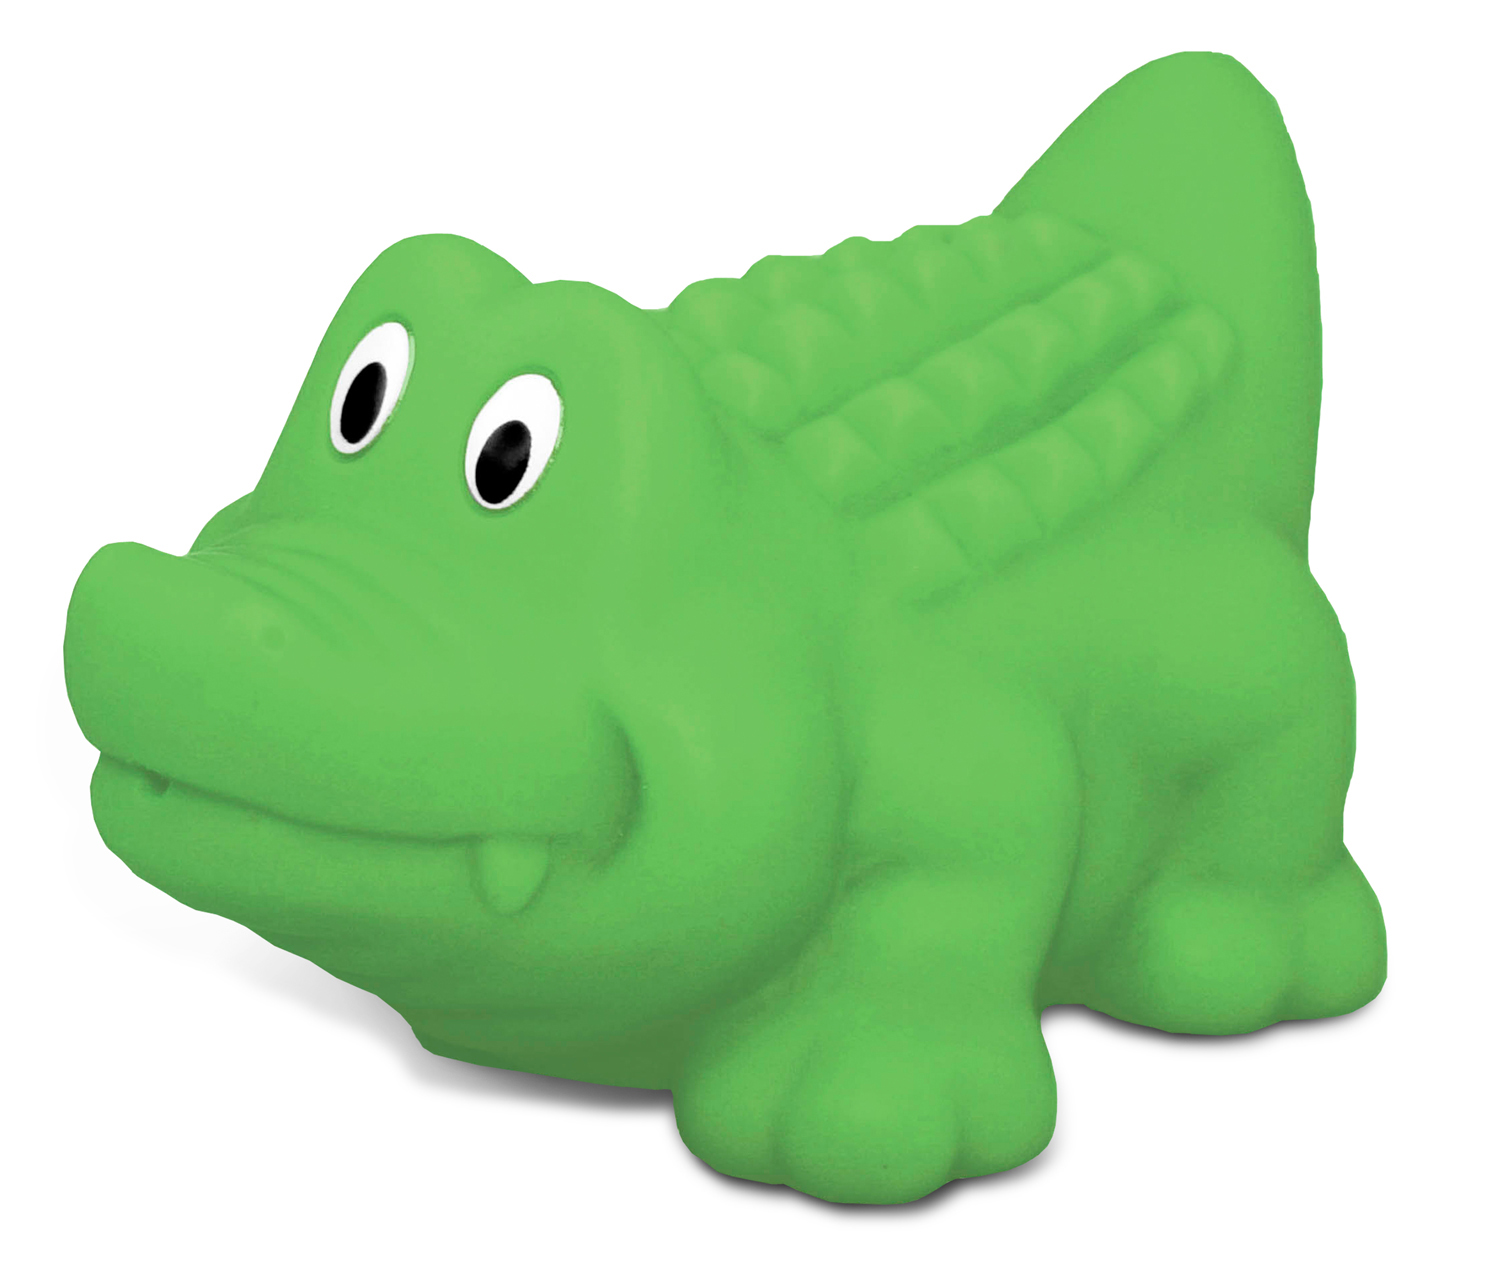 Toddler Bathtime Learning Toy Dollibu Bath Buddies Green Alligator Rubber Squirter Toy... by Puzzled Inc